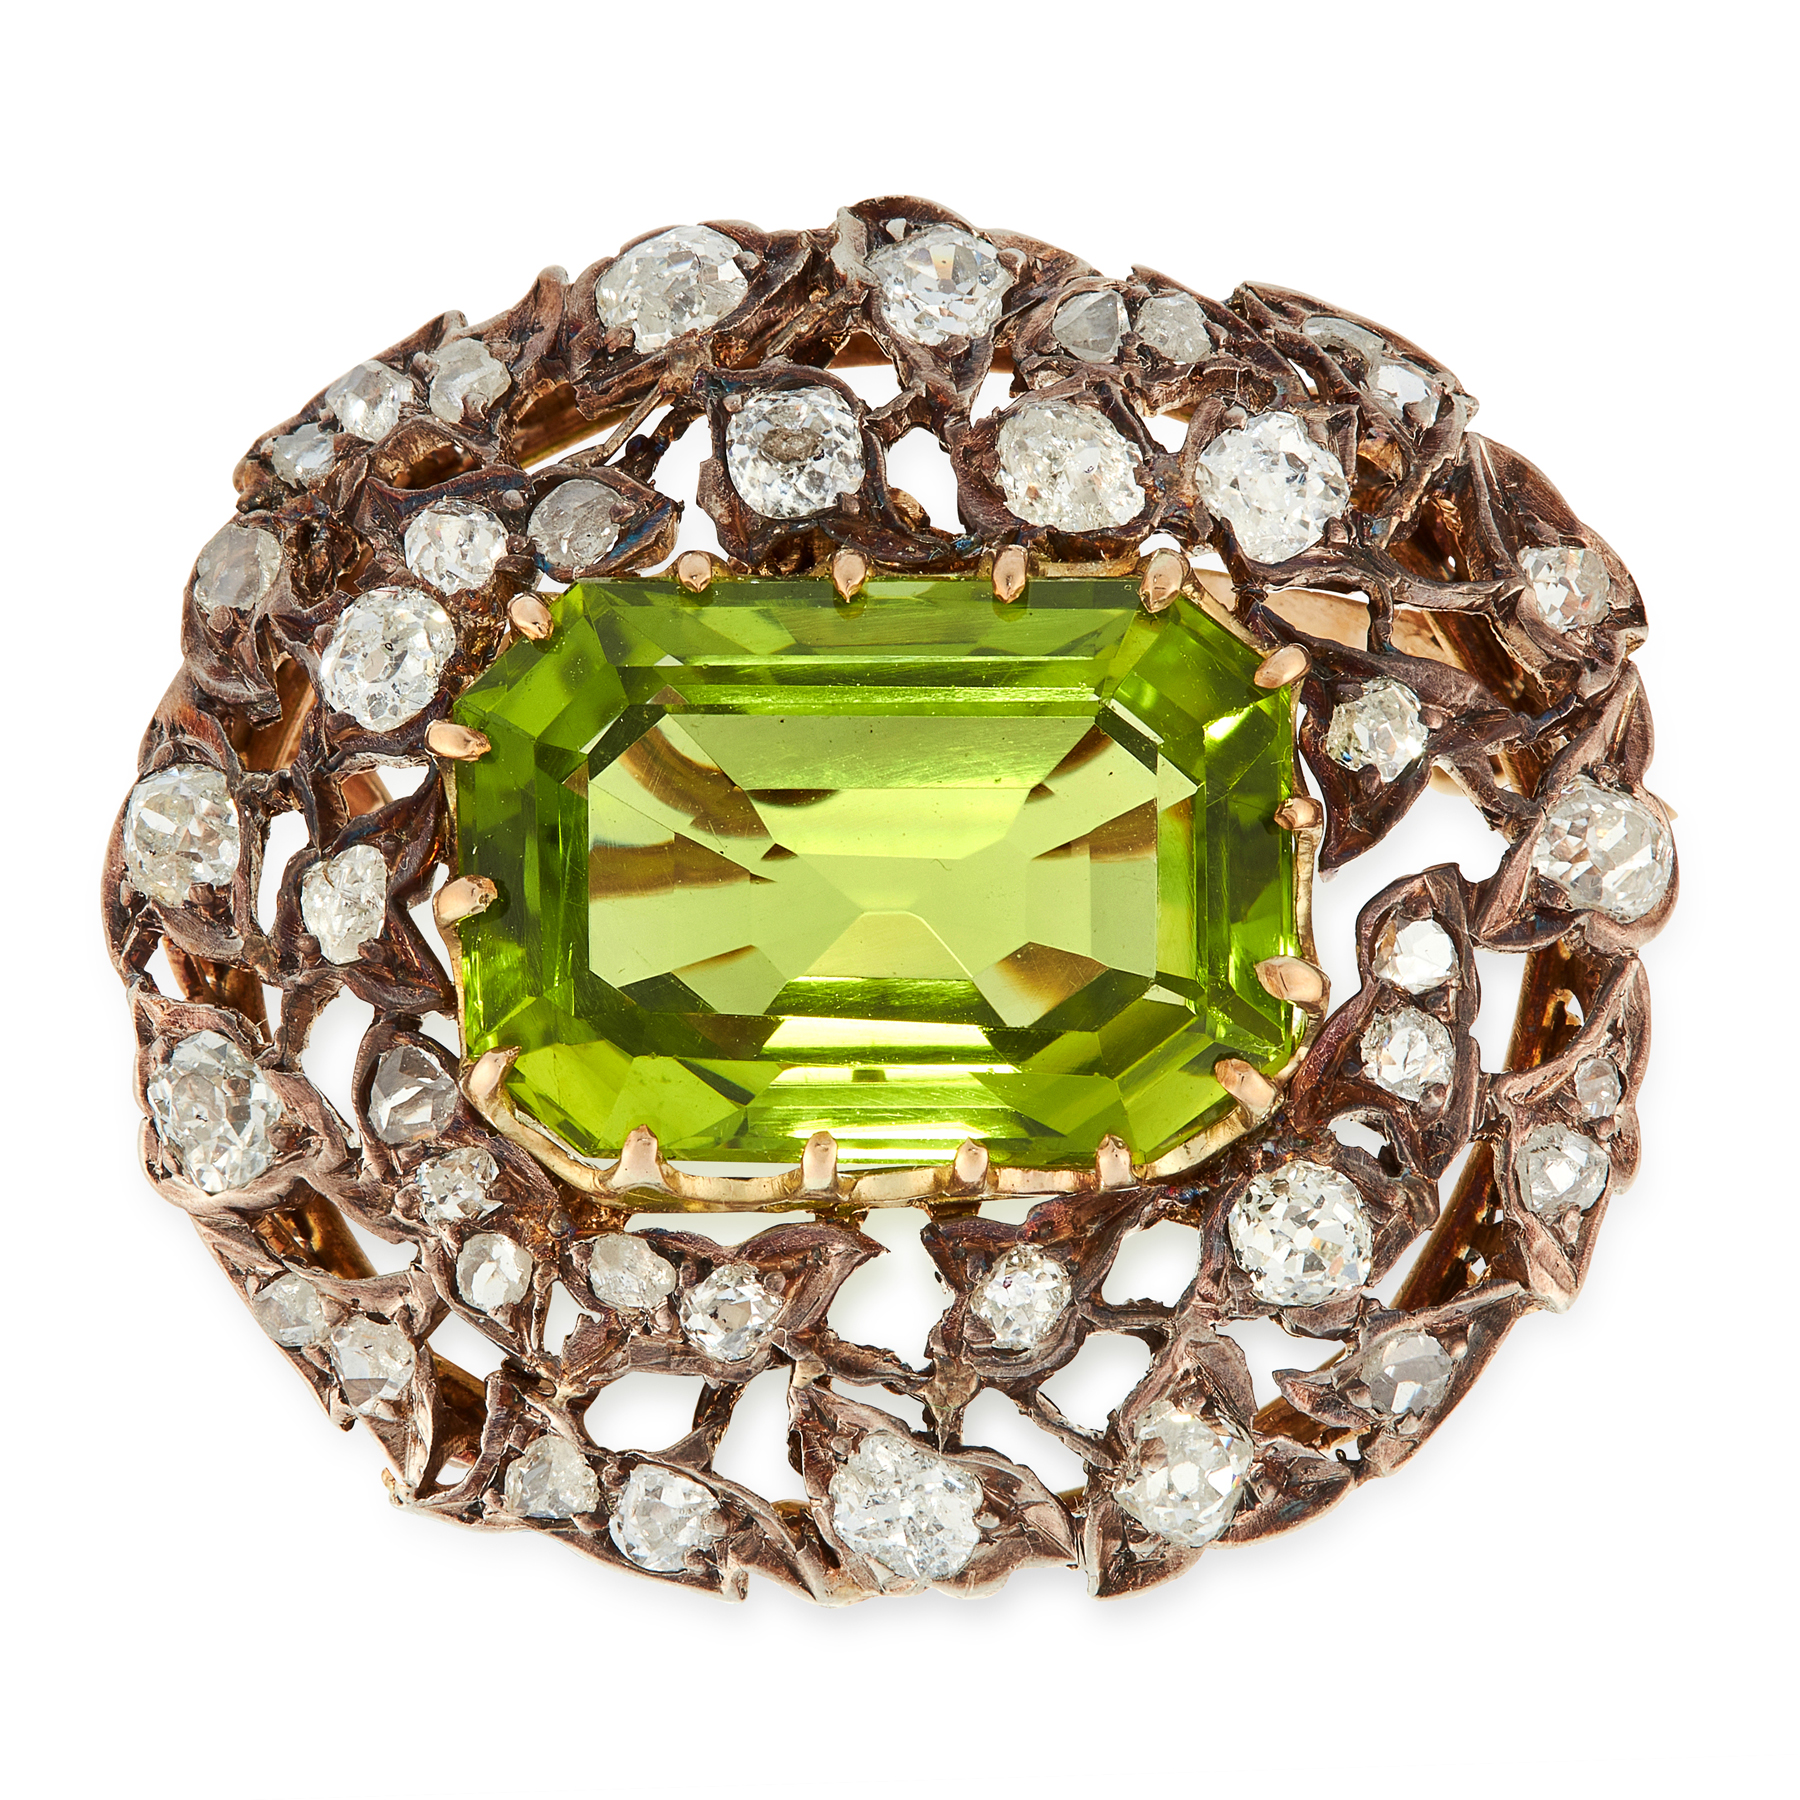 AN ANTIQUE PERIDOT AND DIAMOND BROOCH, 19TH CENTURY in yellow gold and silver, set with an emerald - Image 2 of 2